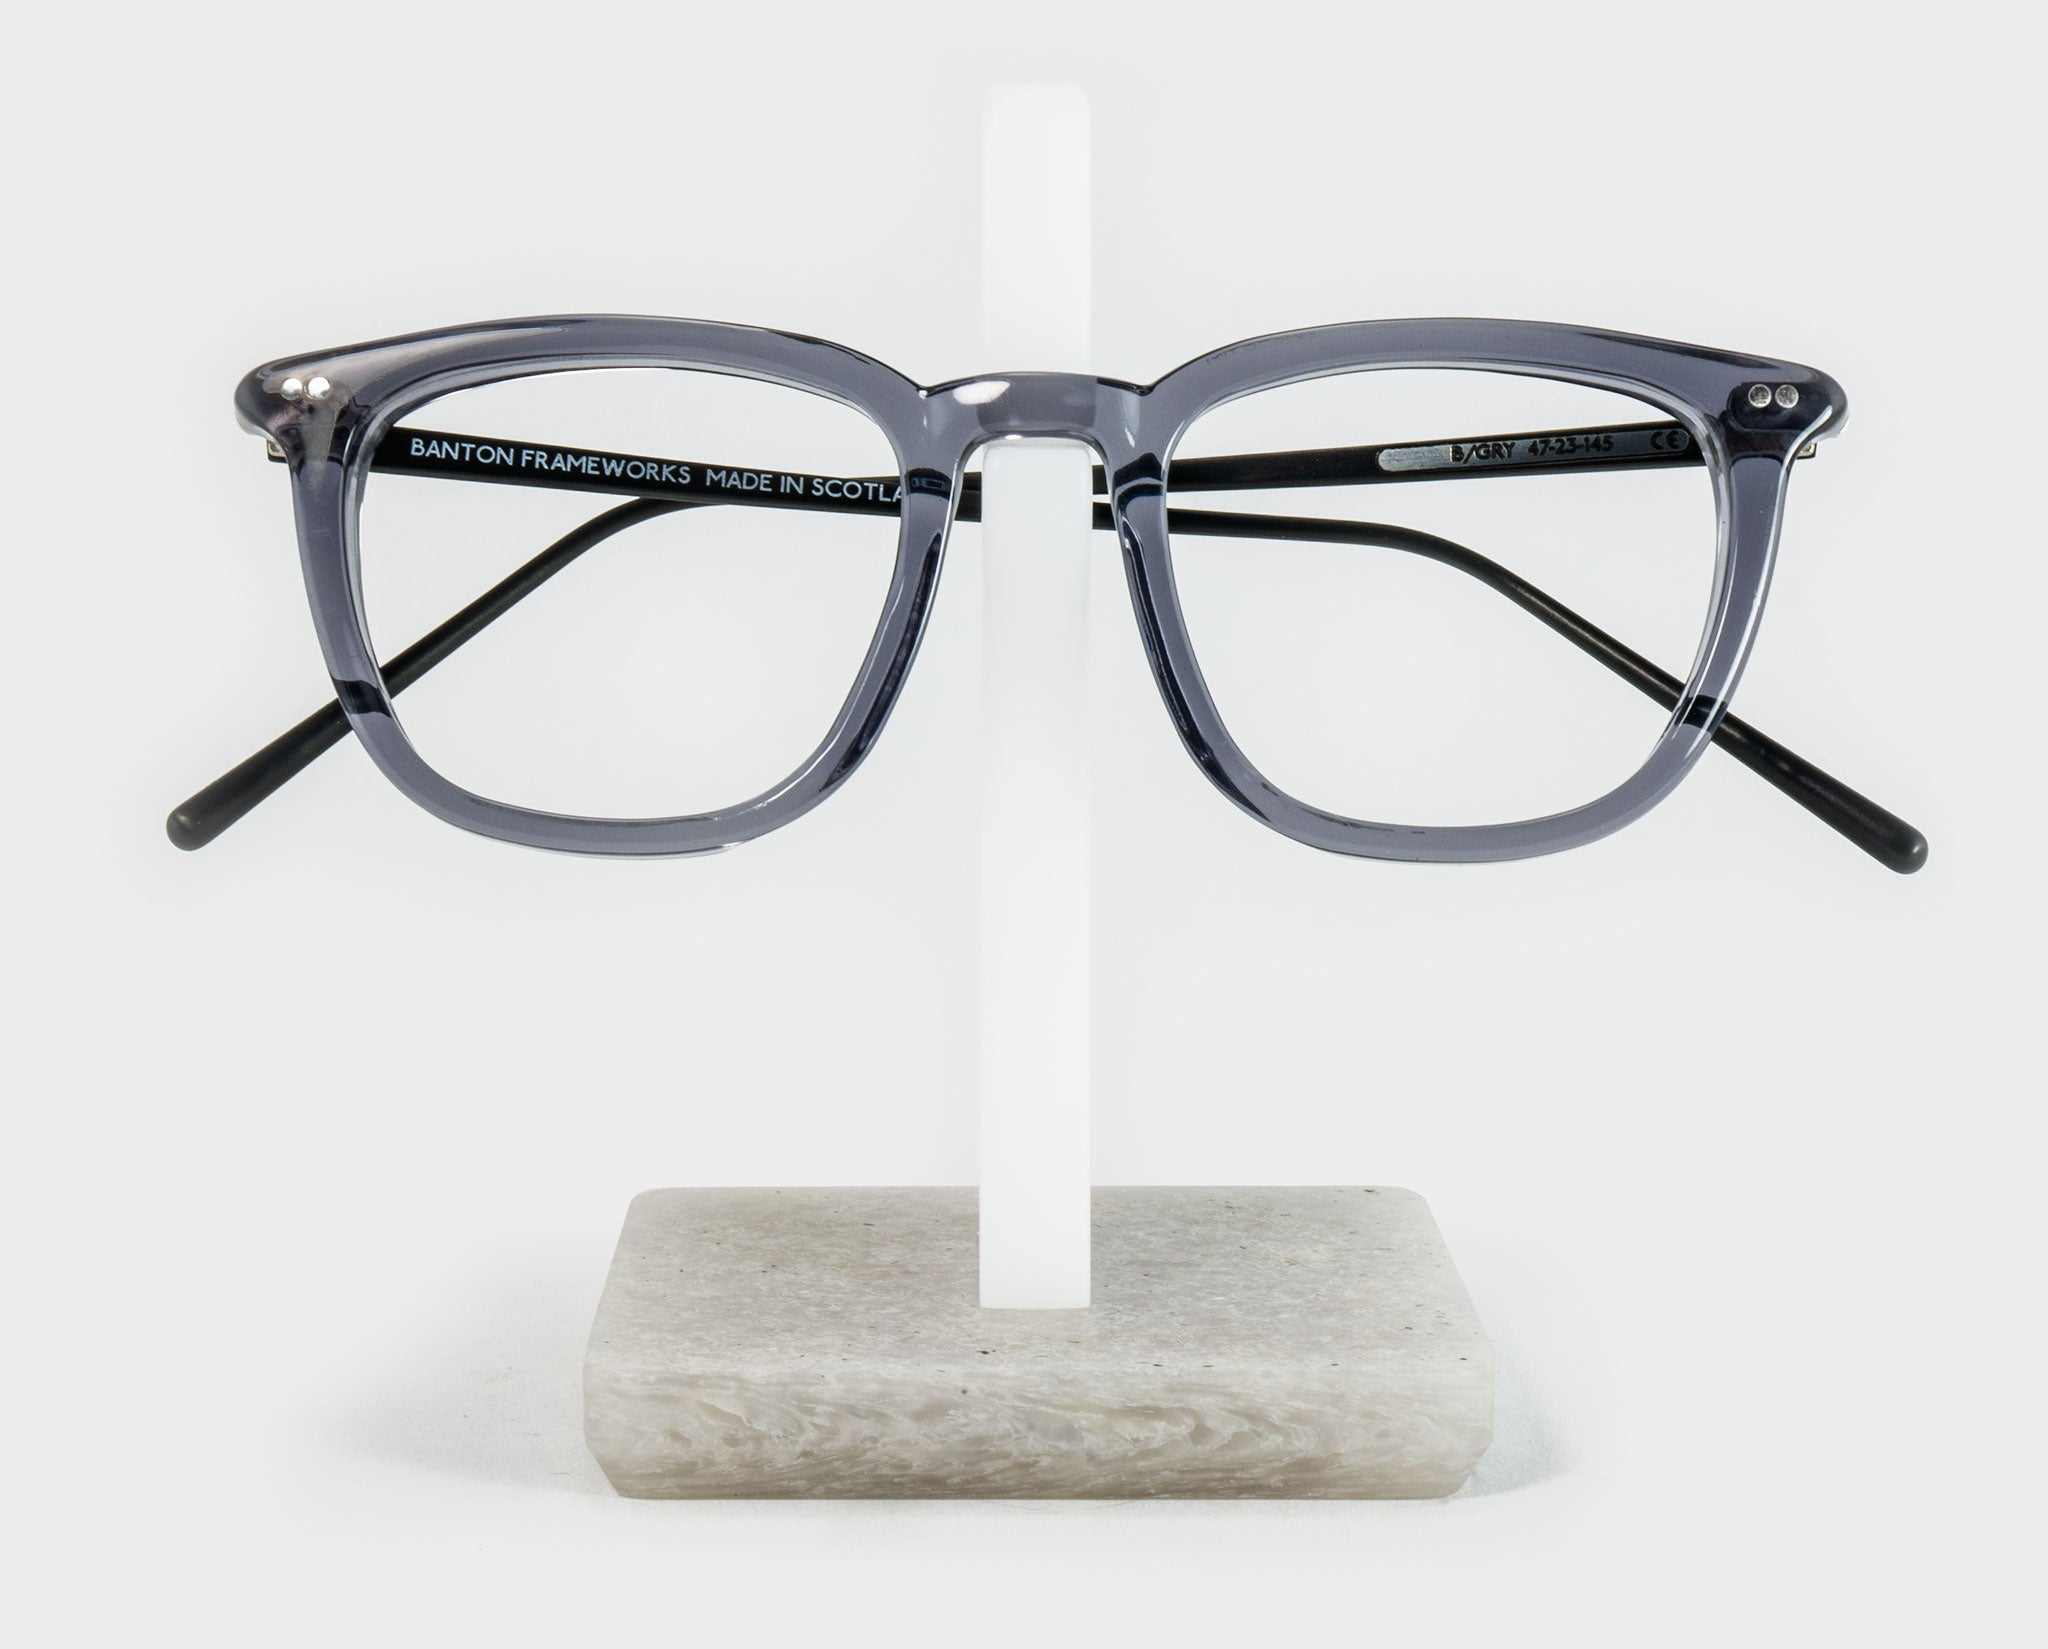 White spectacle holder with glasses front view